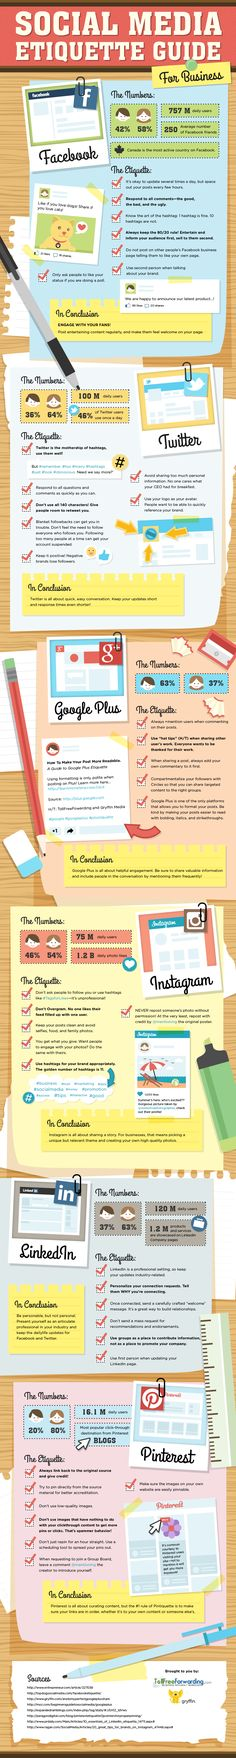 A Guide to Social Media Etiquette for Business #smallbusiness #socialmedia #smallbiz